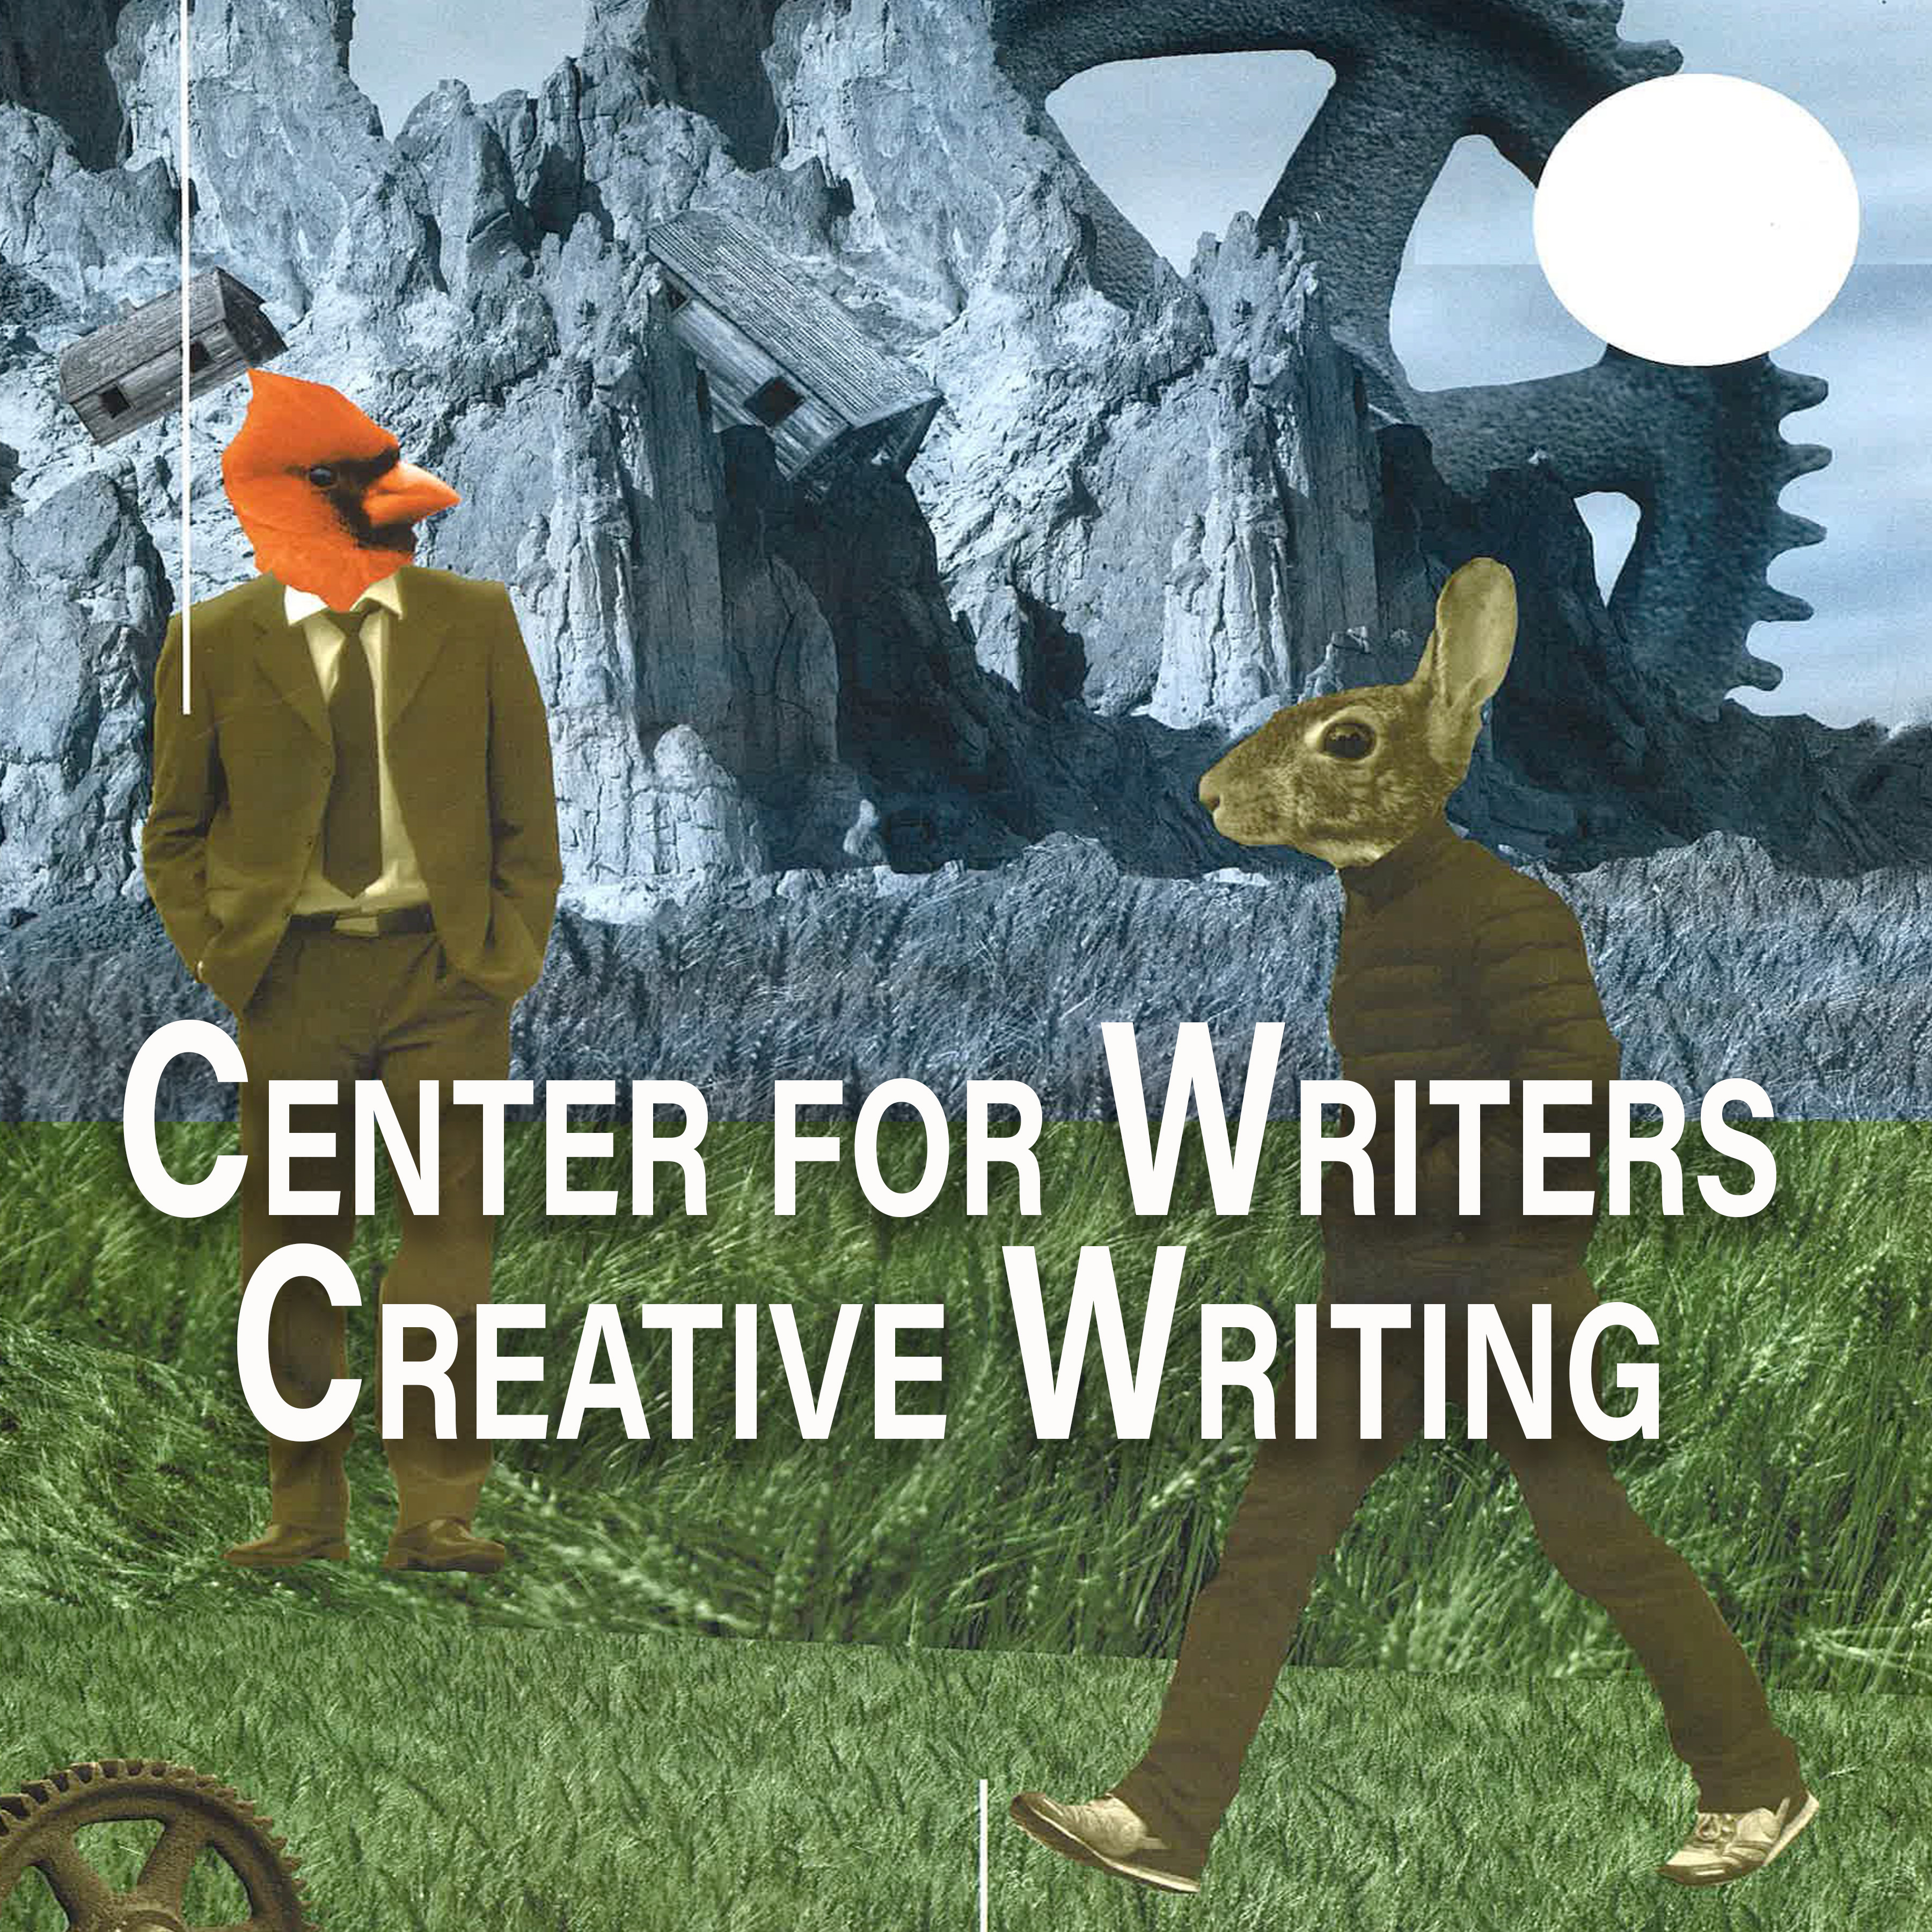 Center for Writers